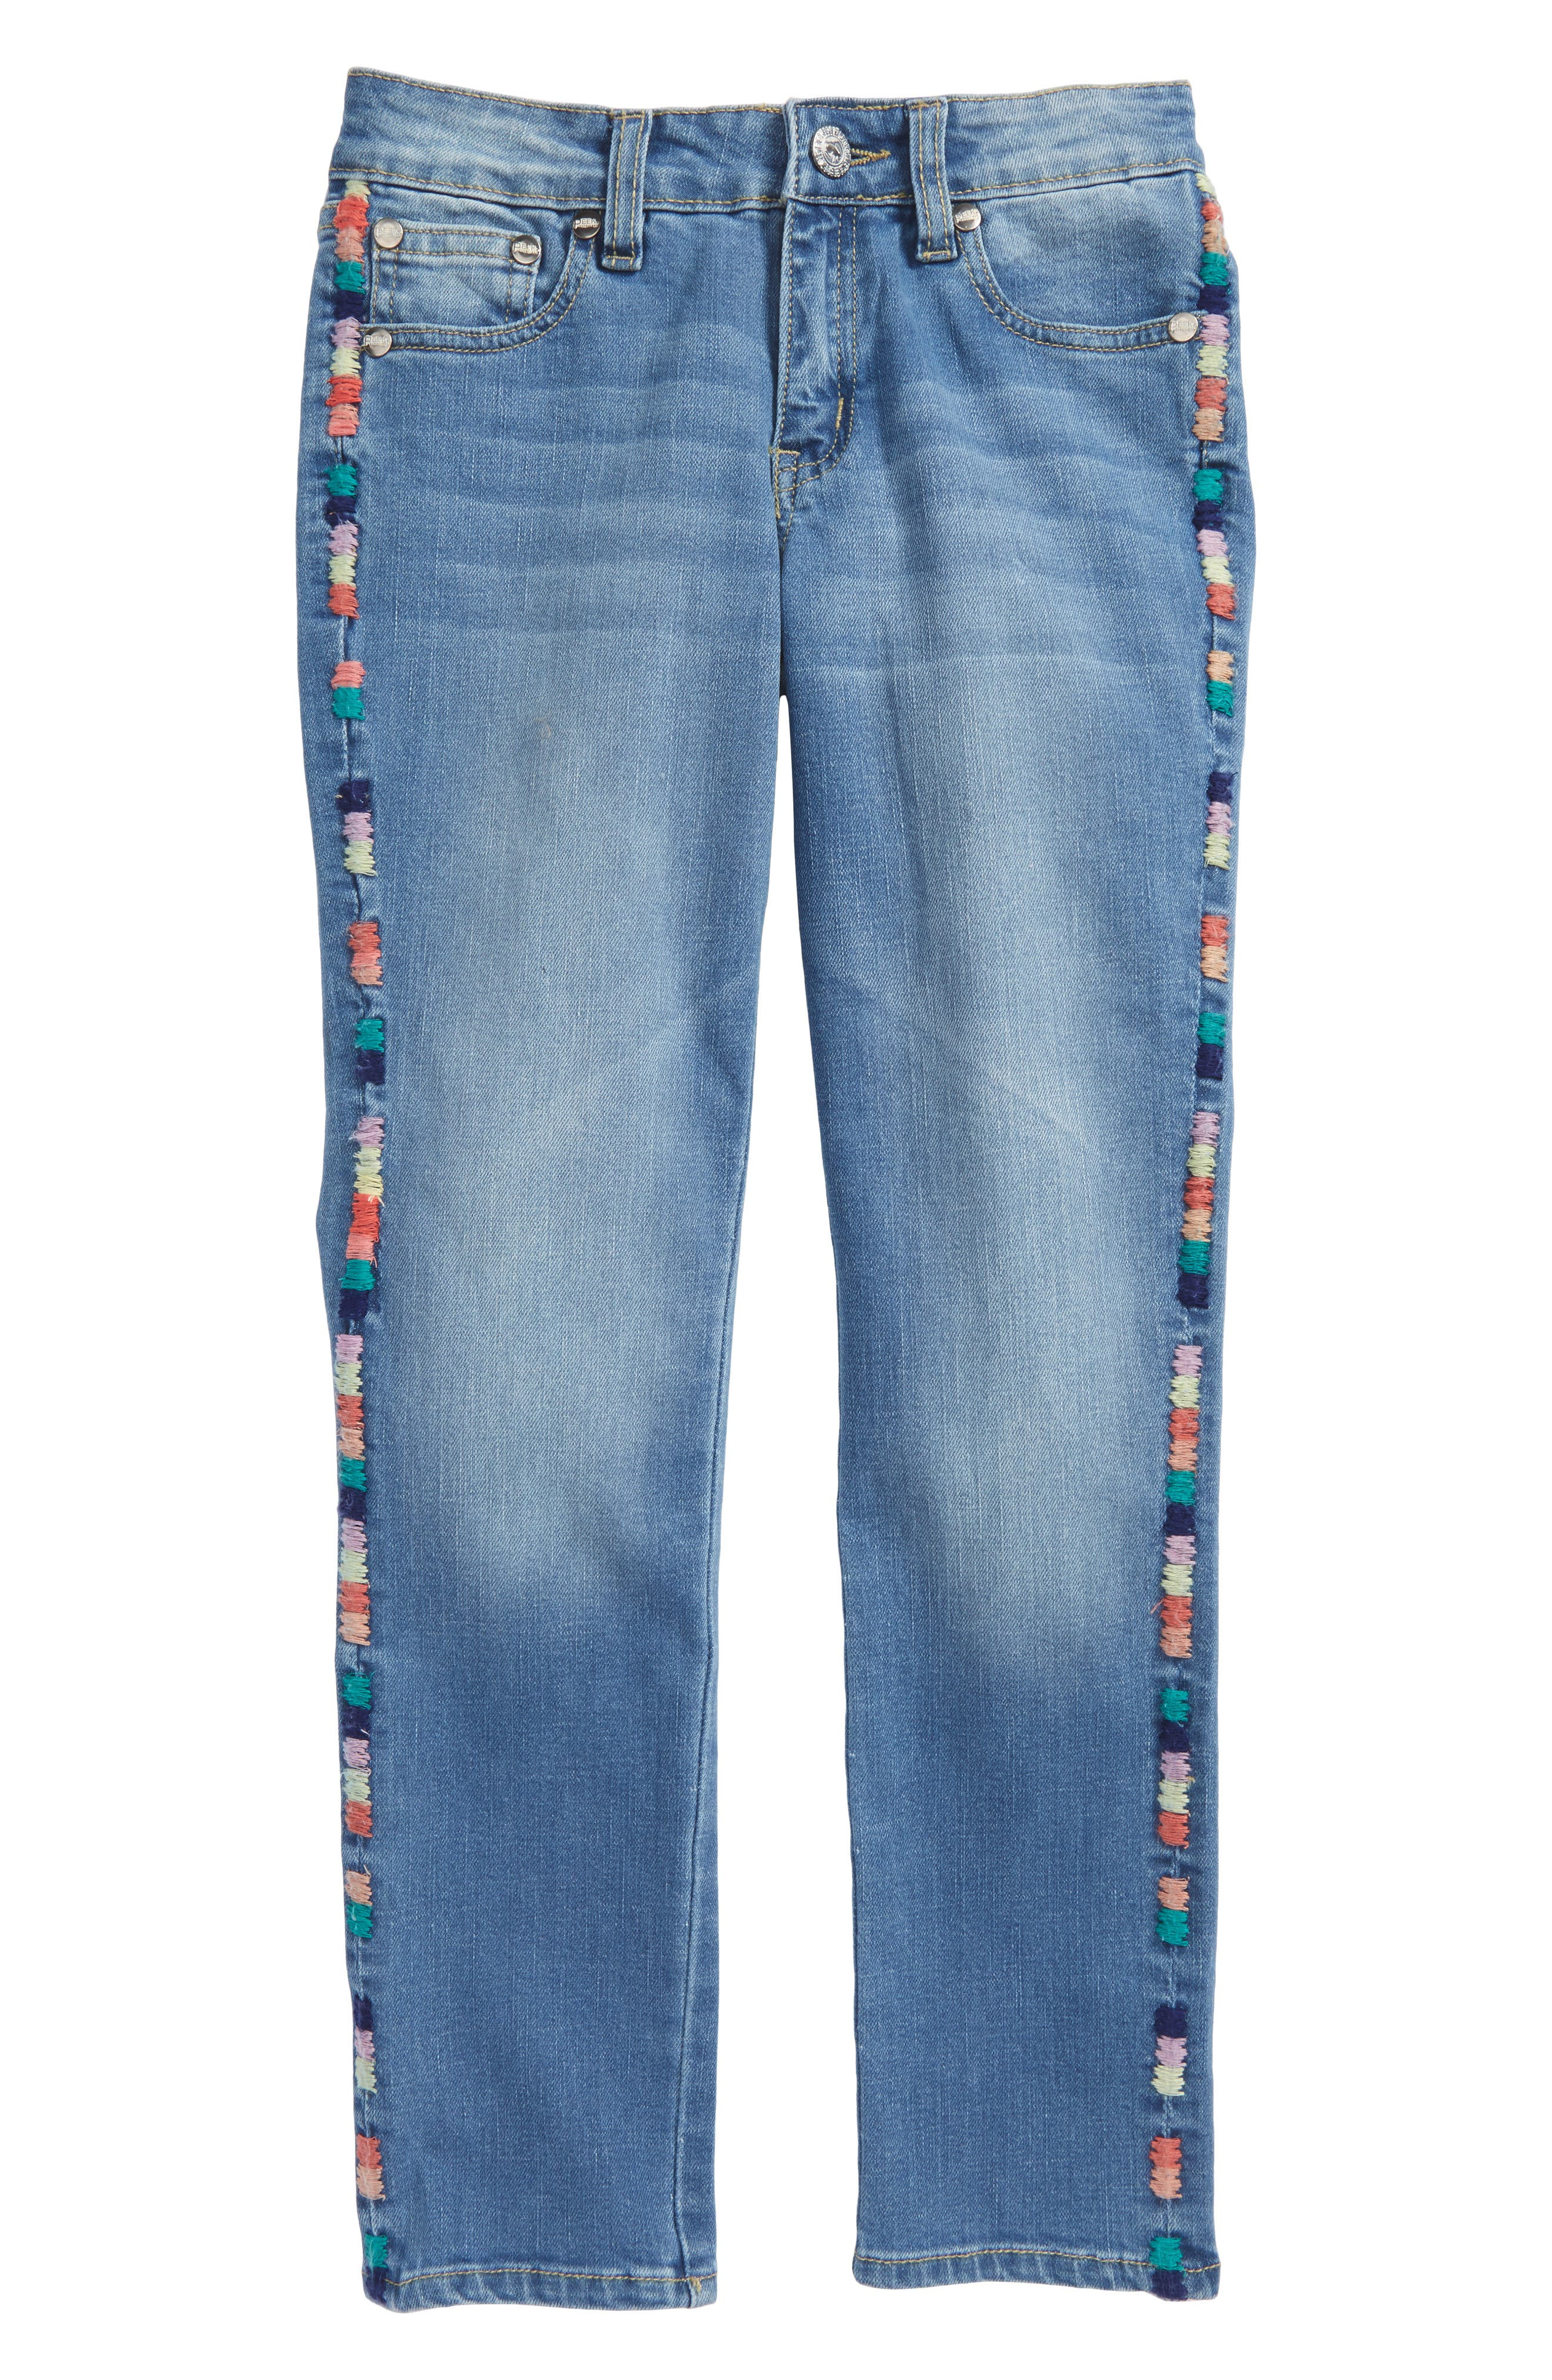 Taylor Embroidered Skinny Jeans,                         Main,                         color, Medium Authentic